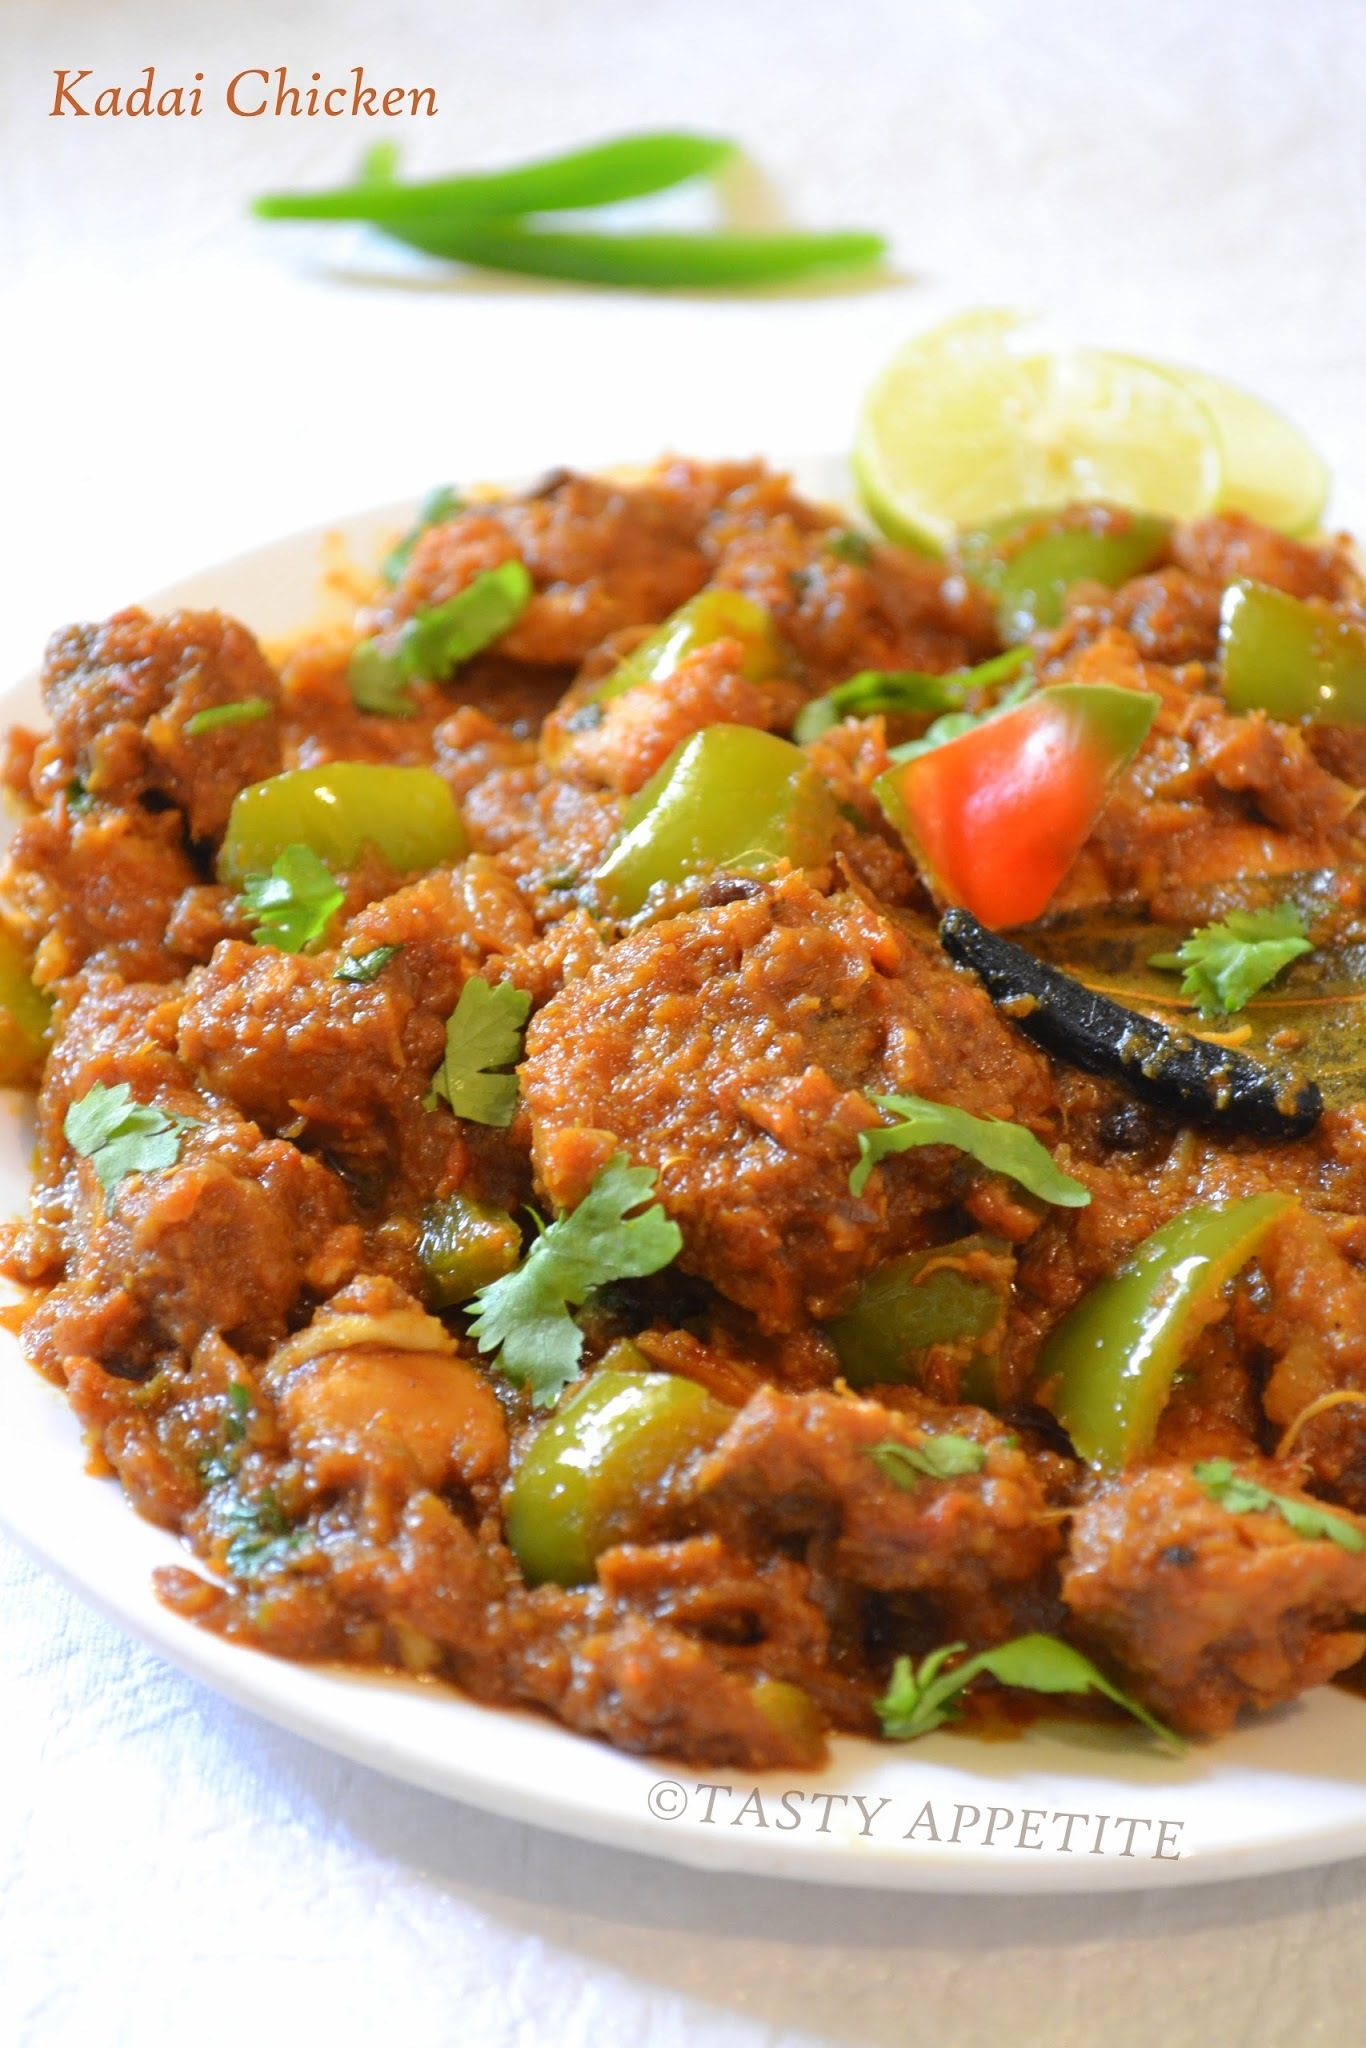 How to make Kadai Chicken / Step by Step :